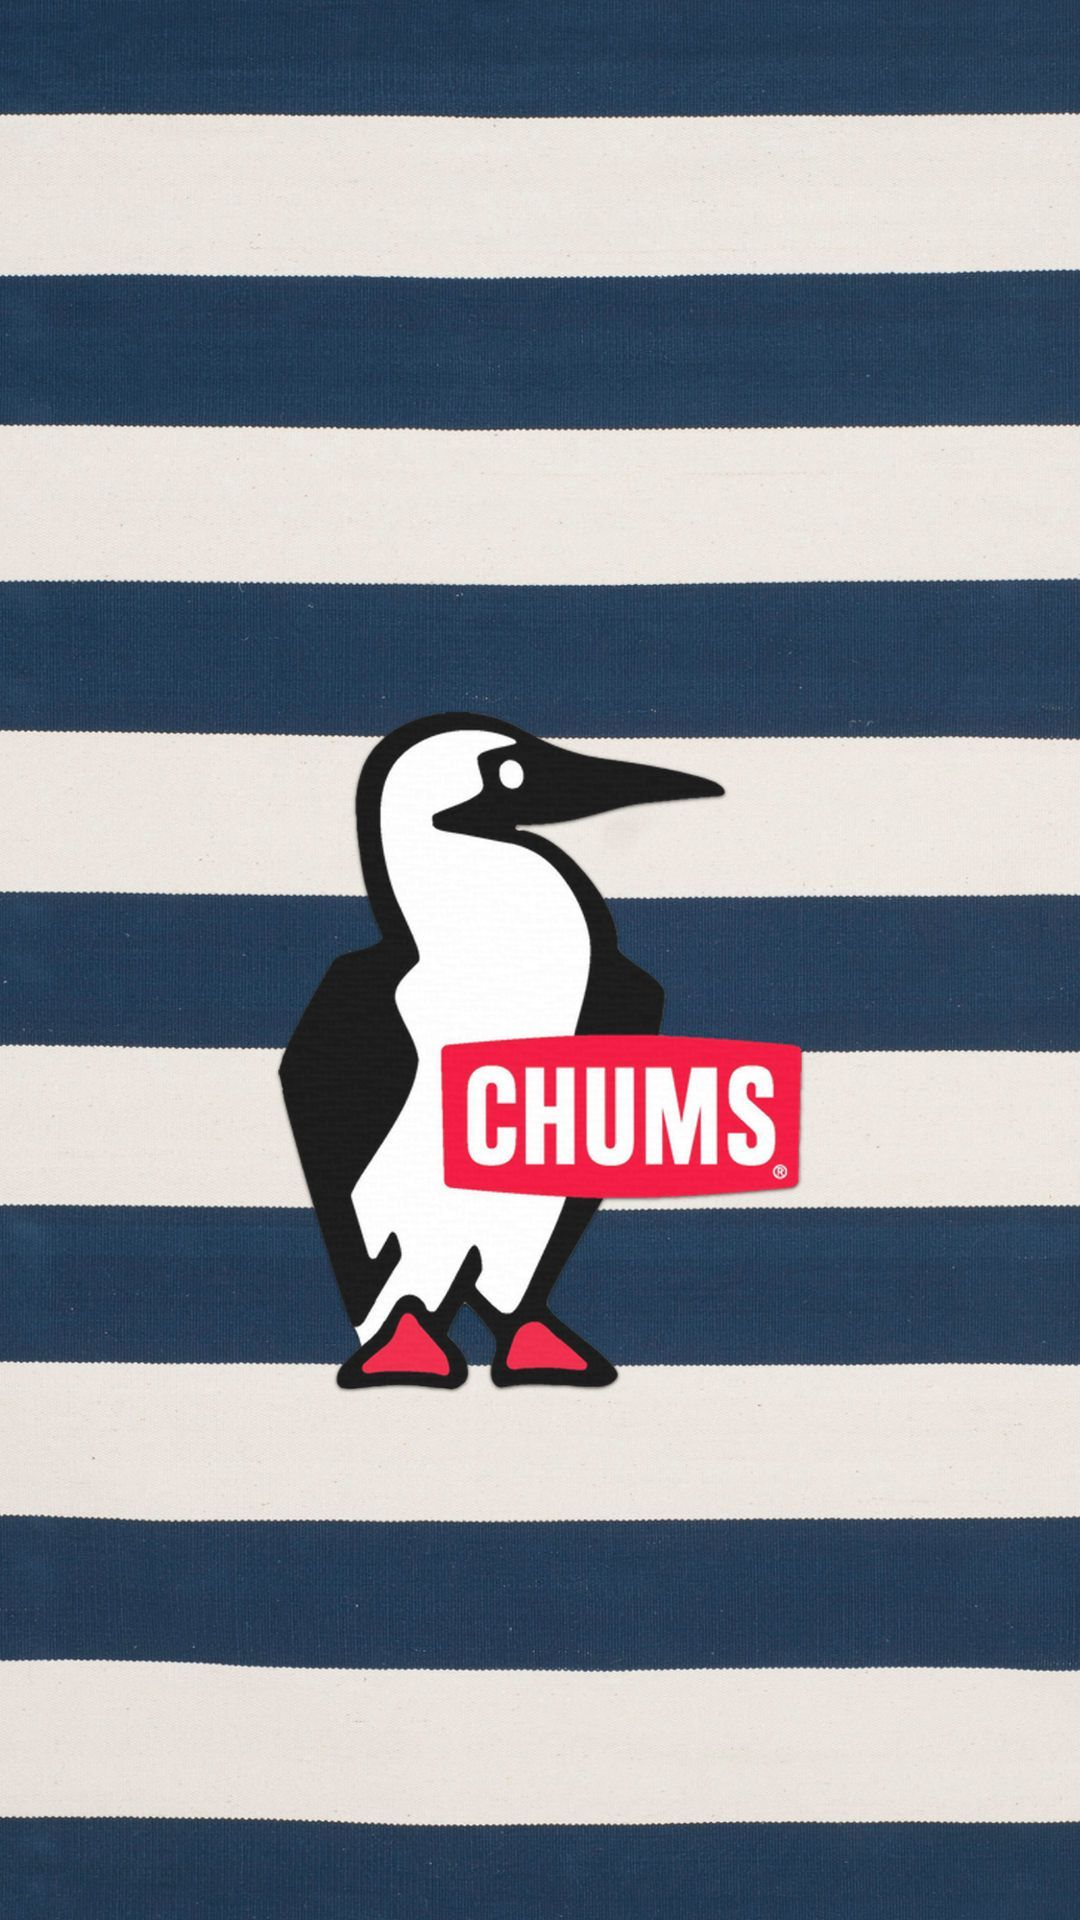 50 Chums Hq Smartphone Wallpaper Collection Chumsの高画質スマホ壁紙 Iphone Xperiaやgalaxyなどのandroidスマホに対応 無料で取り放題の高画質スマホ壁紙 Iphone And Android S ロゴ 壁紙 迷彩壁紙 あいふぉん 壁紙